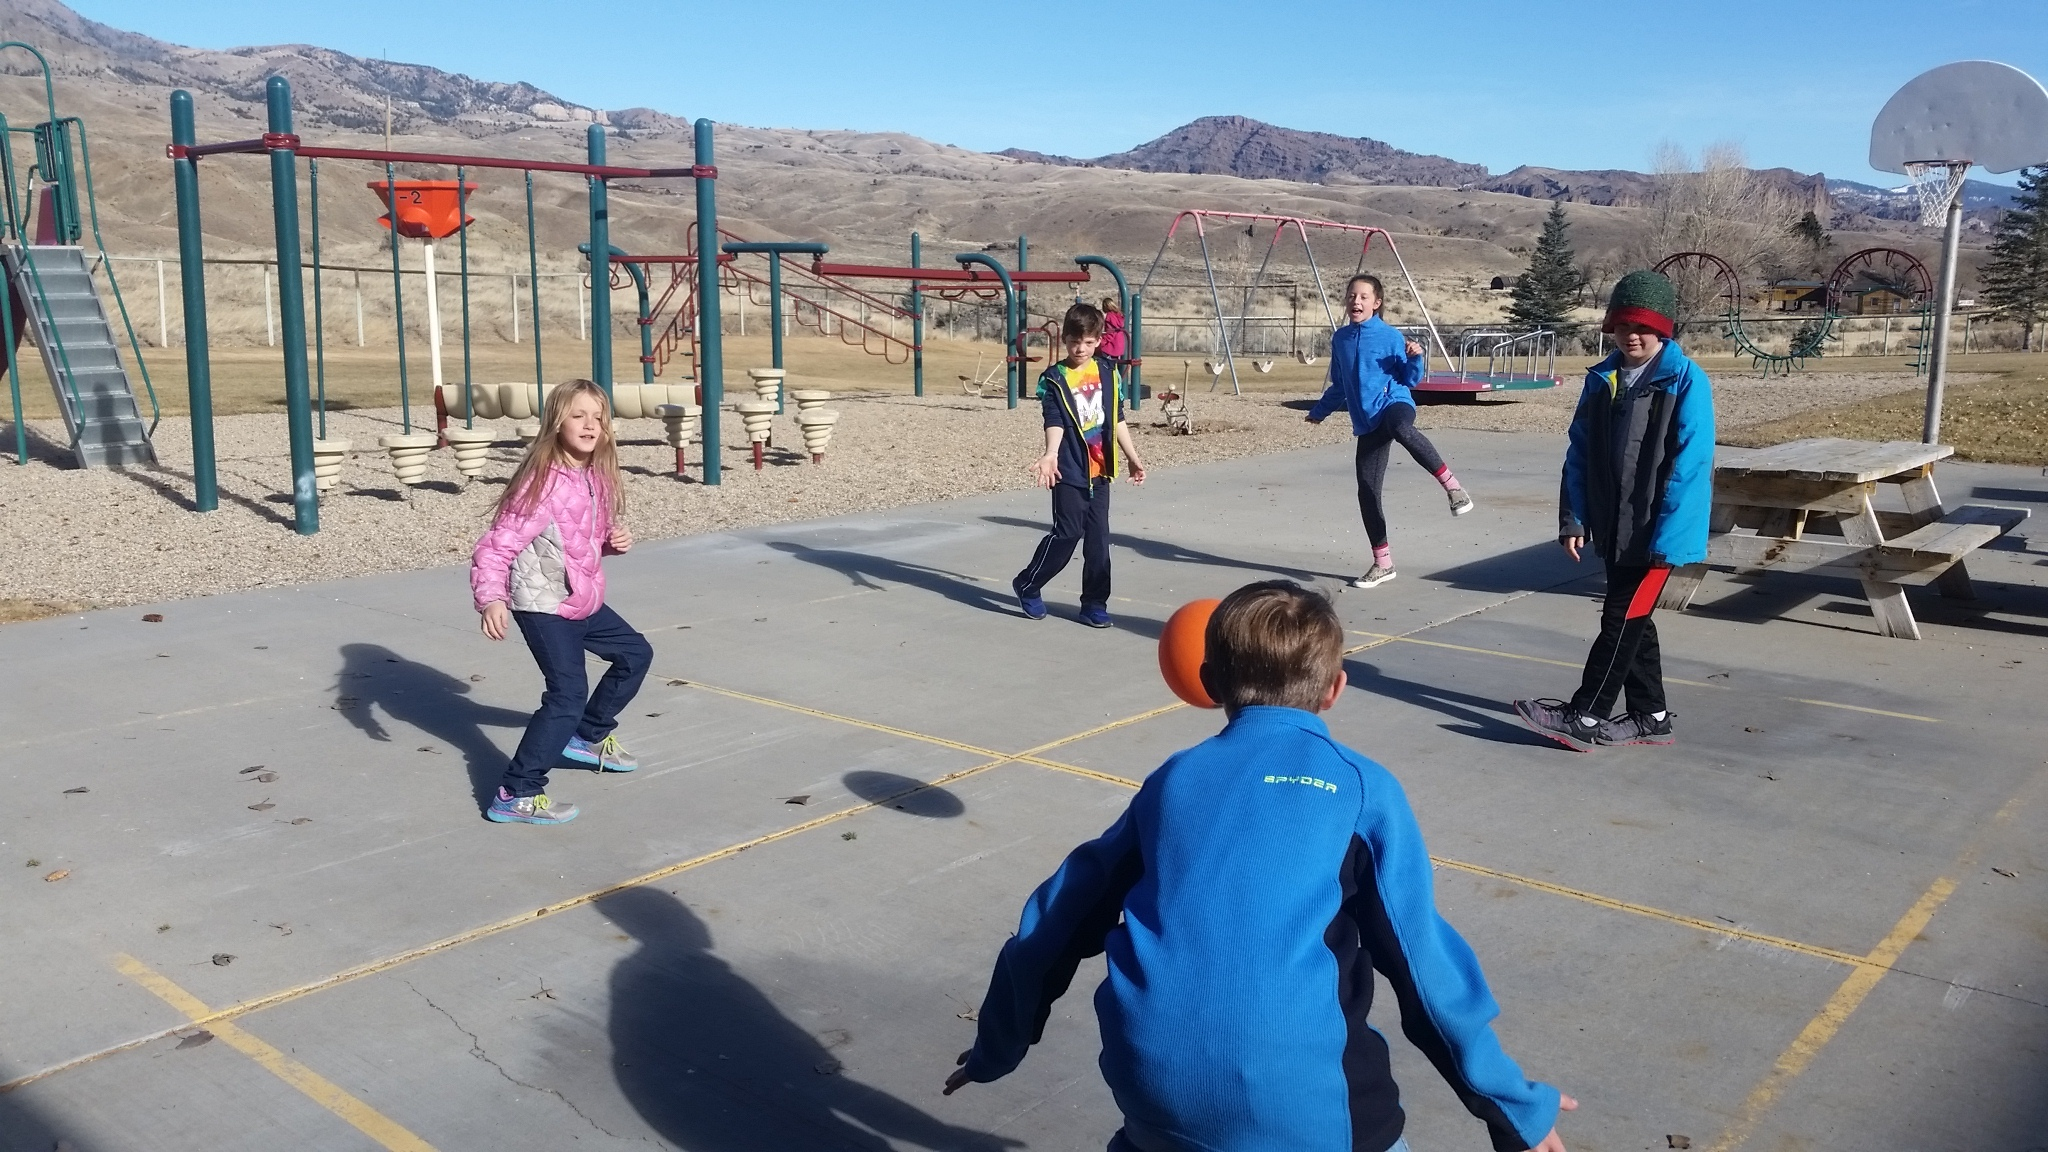 Students play four square at school playground.